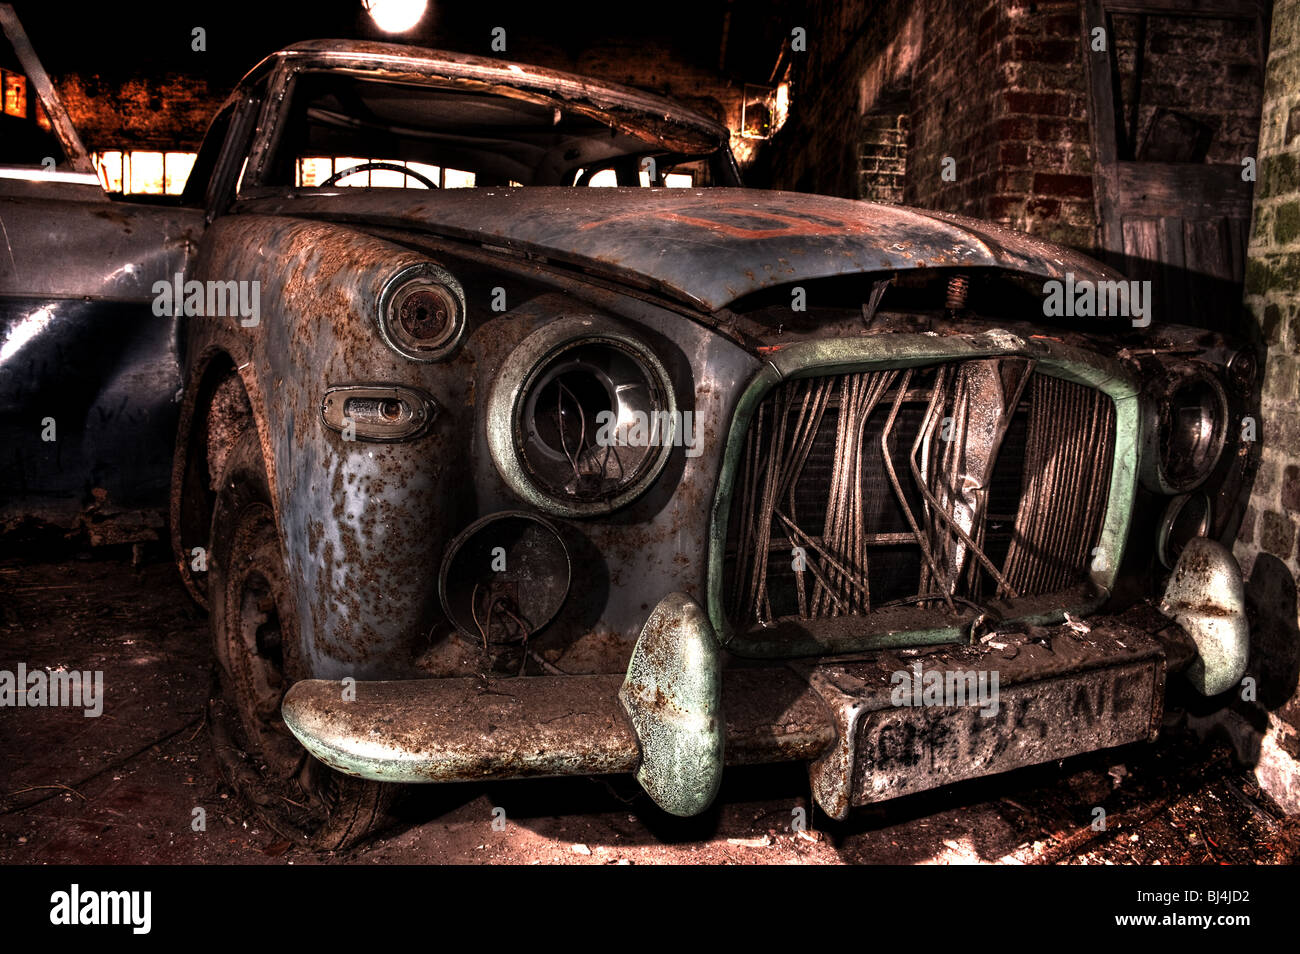 Abandoned old car in a derelict air base in croft warrington cheshire england - Stock Image